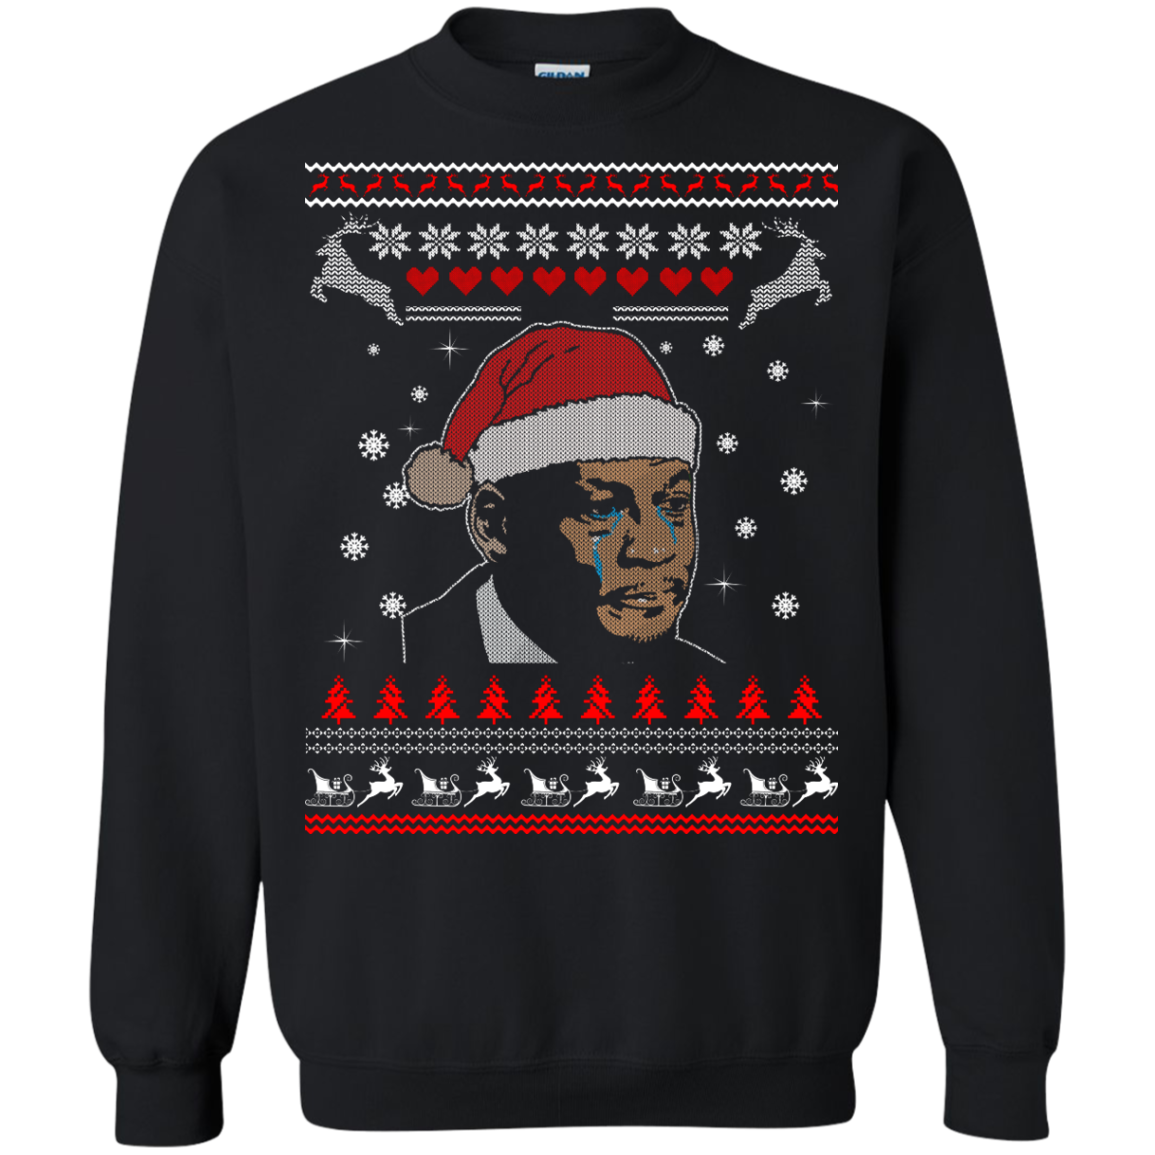 Jordan crying png. Christmas sweater long sleeve